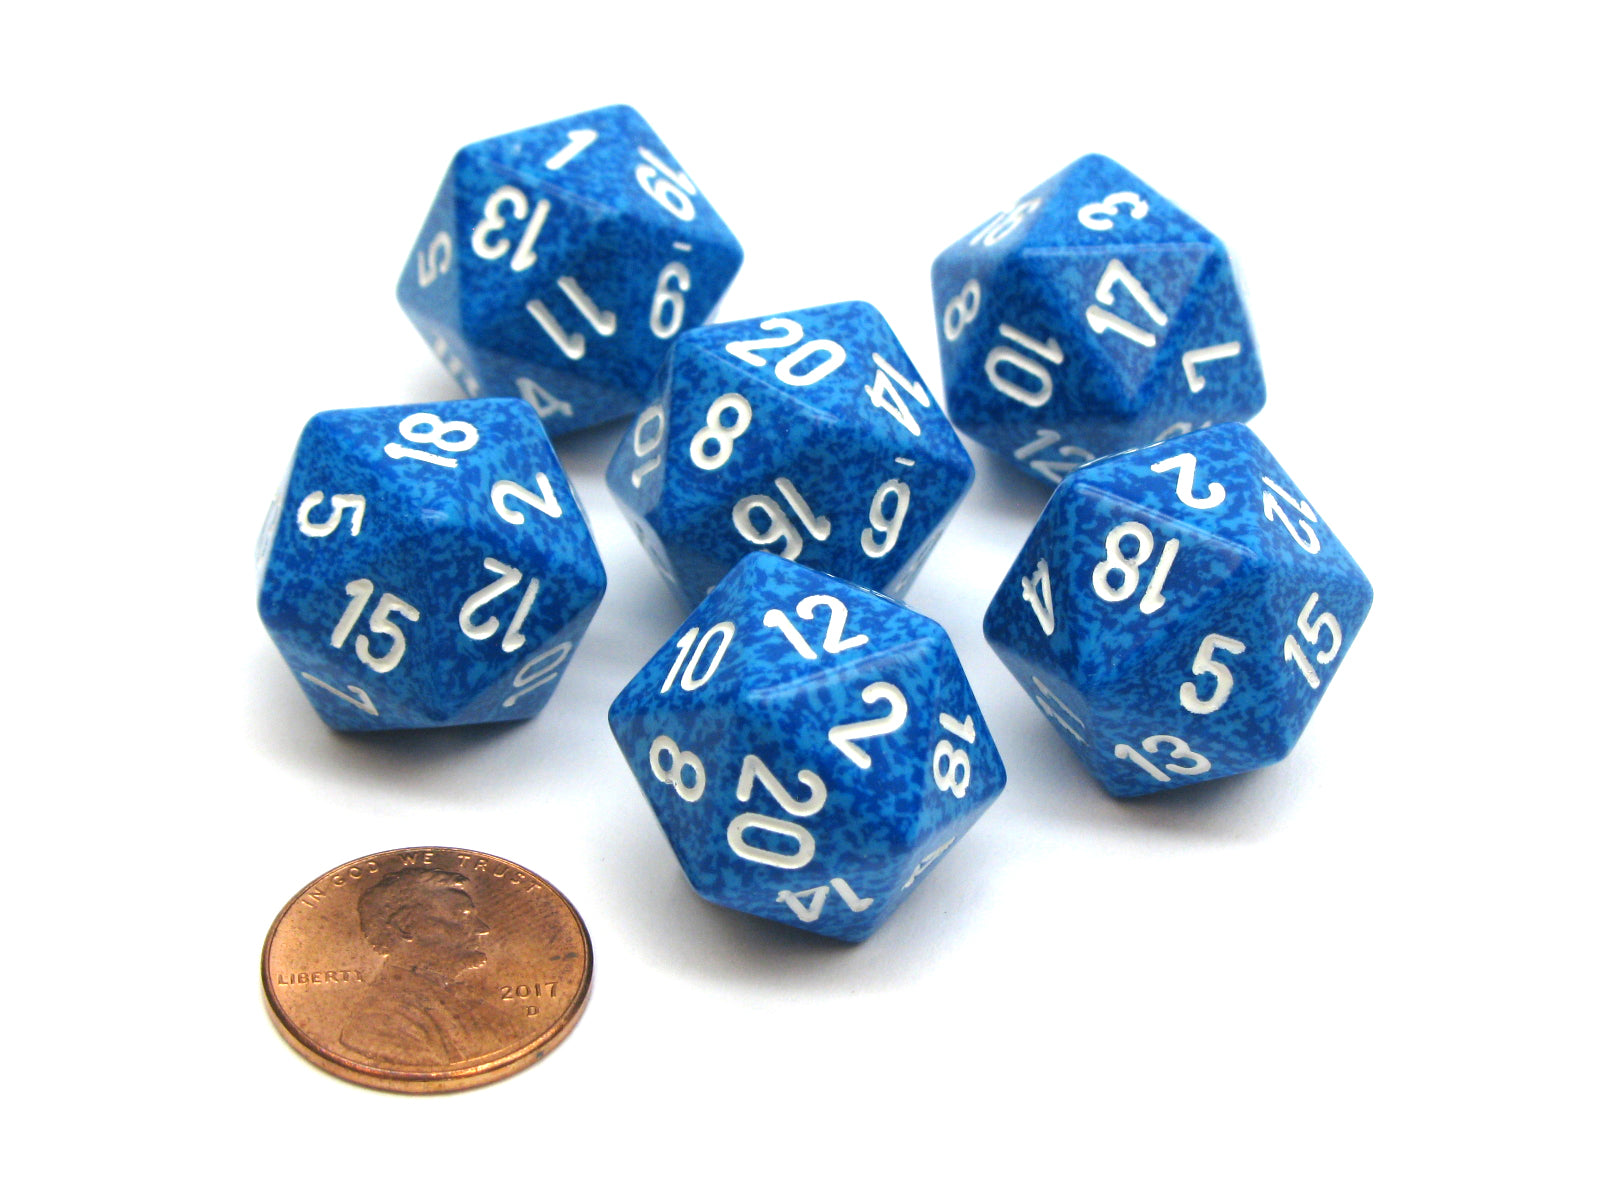 Speckled 20 Sided D20 Chessex Dice, 6 Pieces - Water